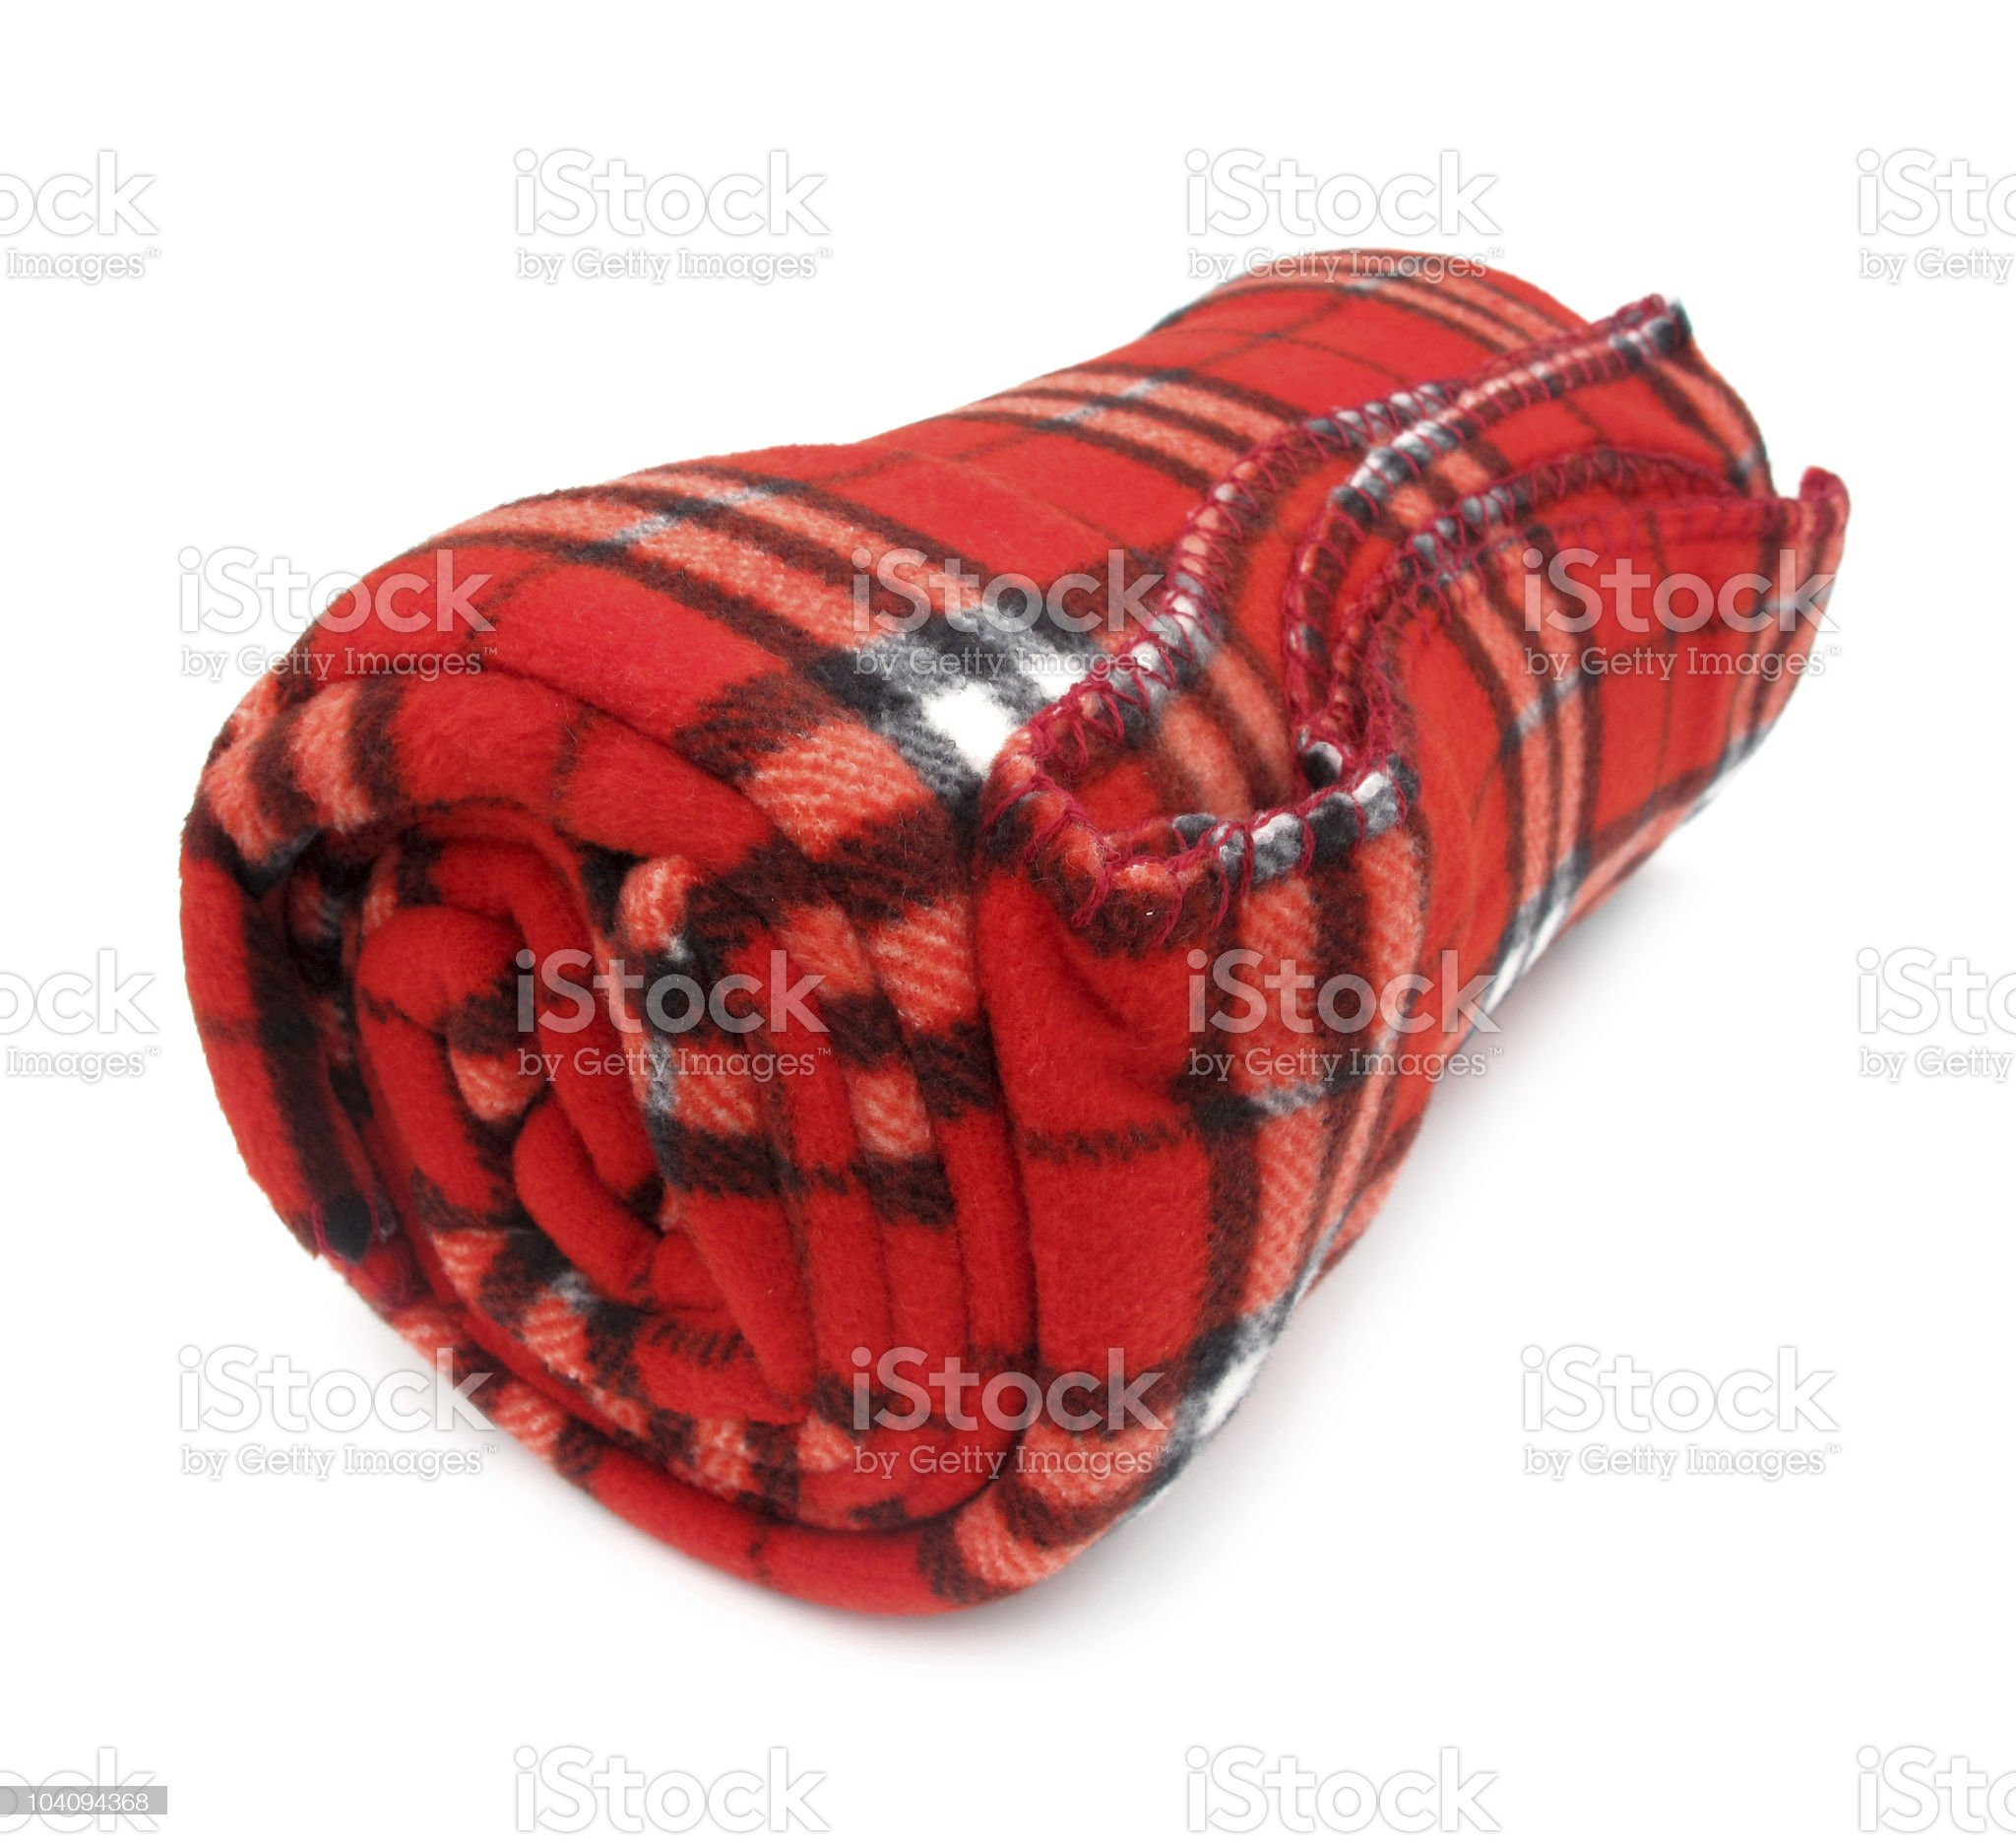 Rolled up red plaid blanket against white background royalty-free stock photo